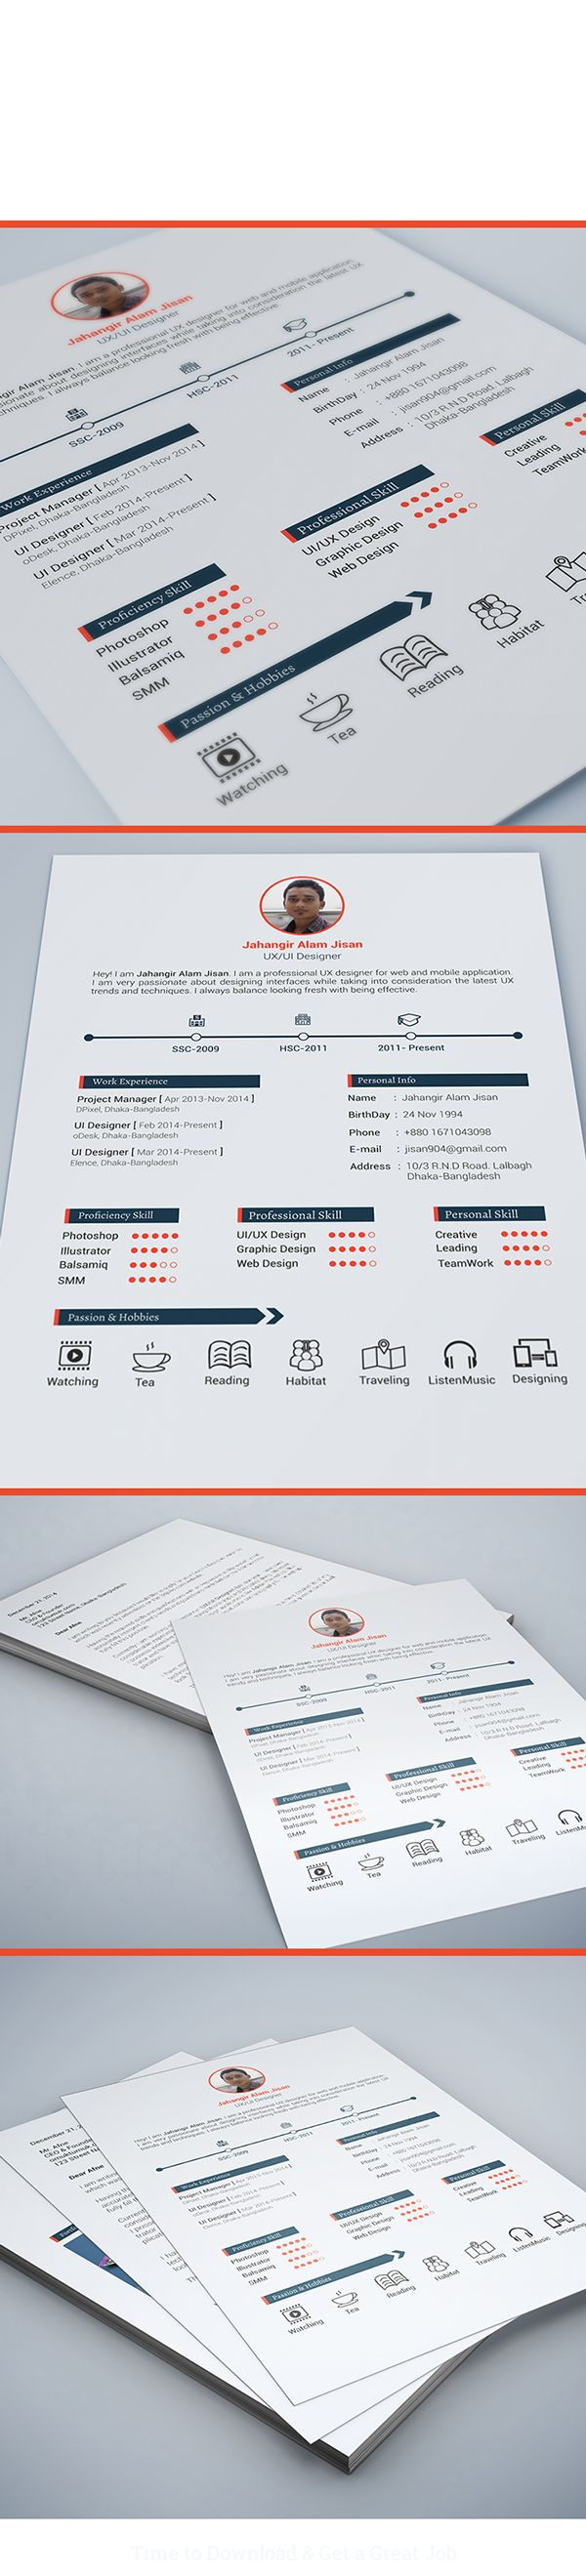 Template For Resume Free Best Ideas About Creative Resume Templates